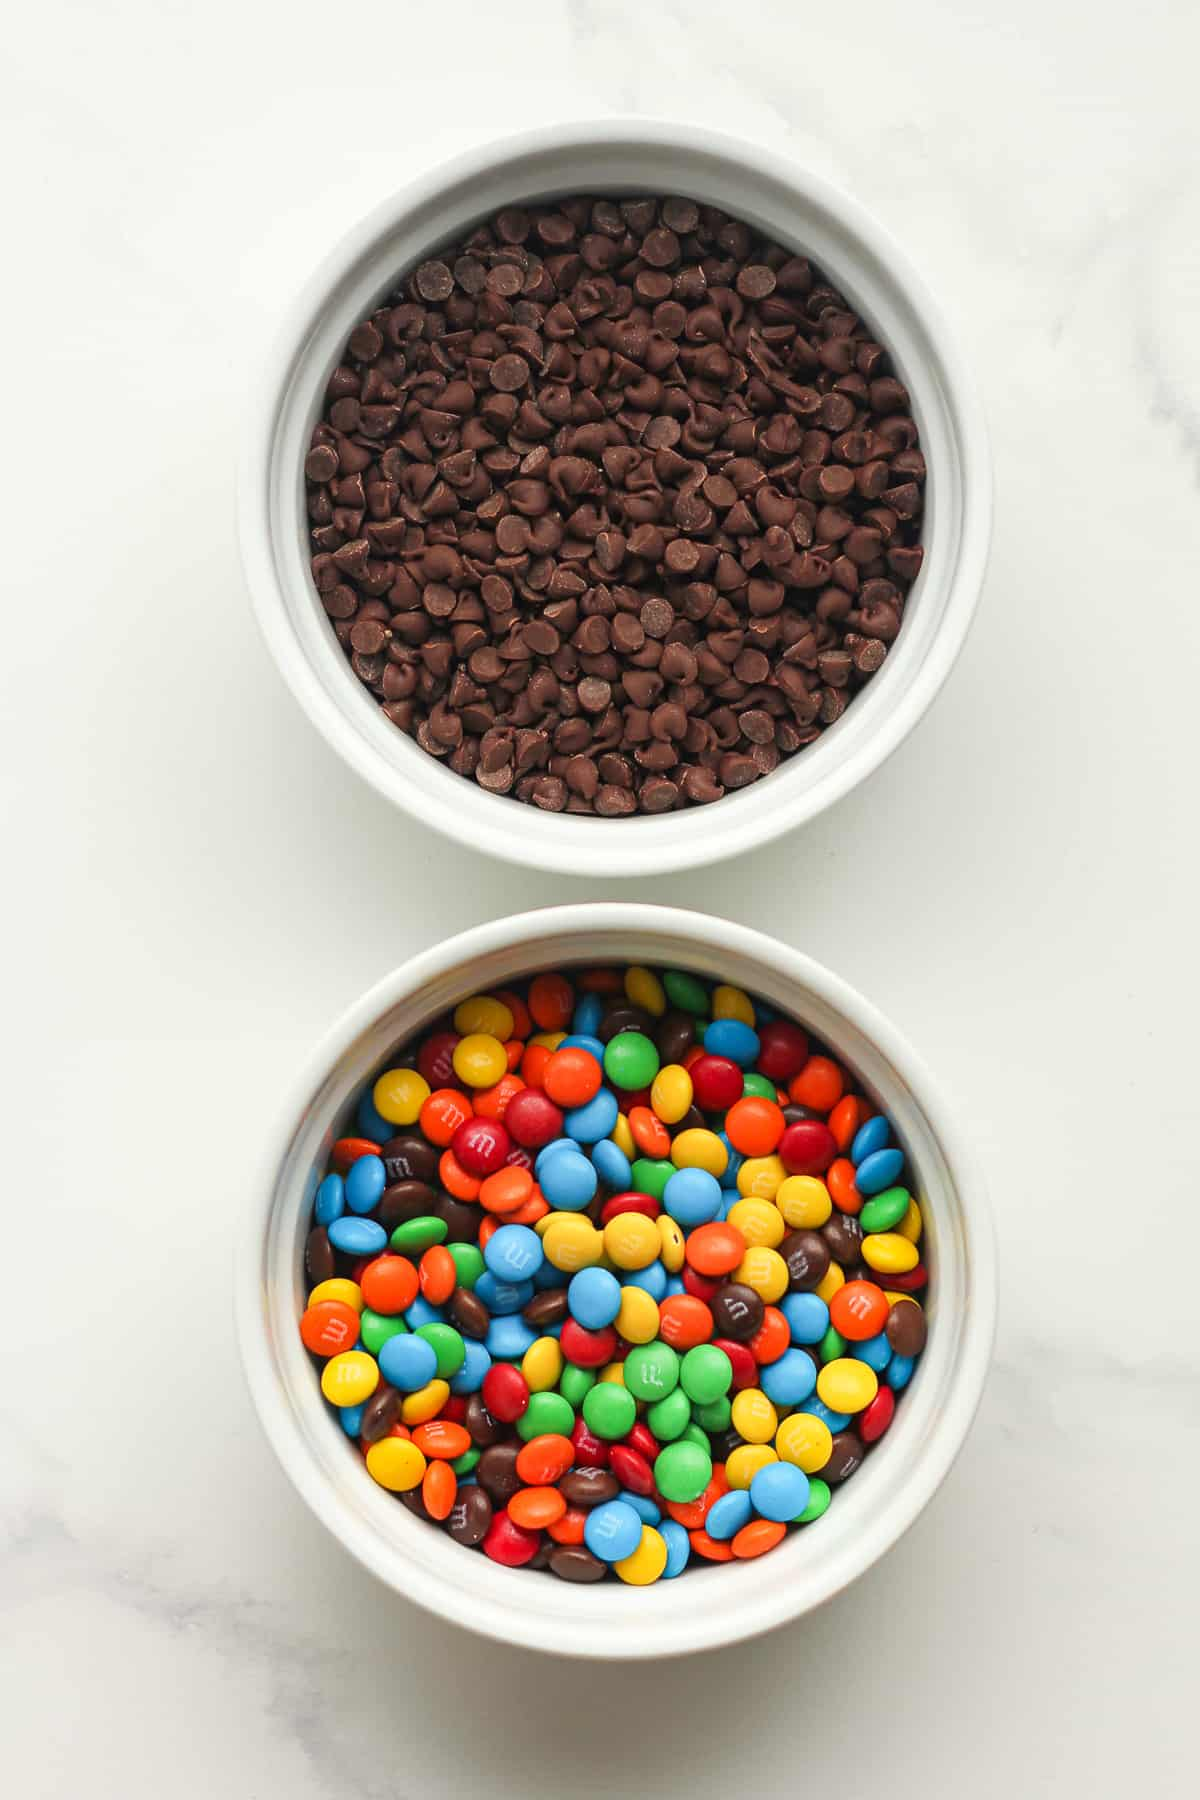 Bowls of the mini chocolate chips and the mini m&ms.